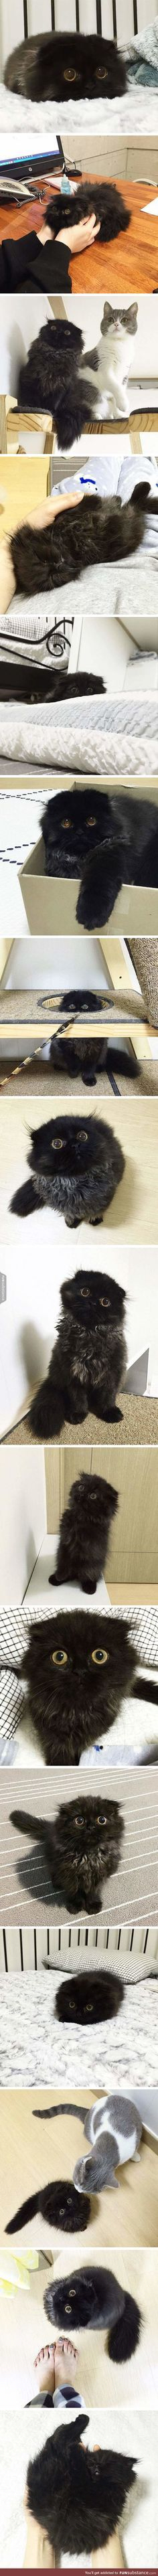 The guy before me saved this to dogs. This is definitely not a dog!! It's a very cute cat